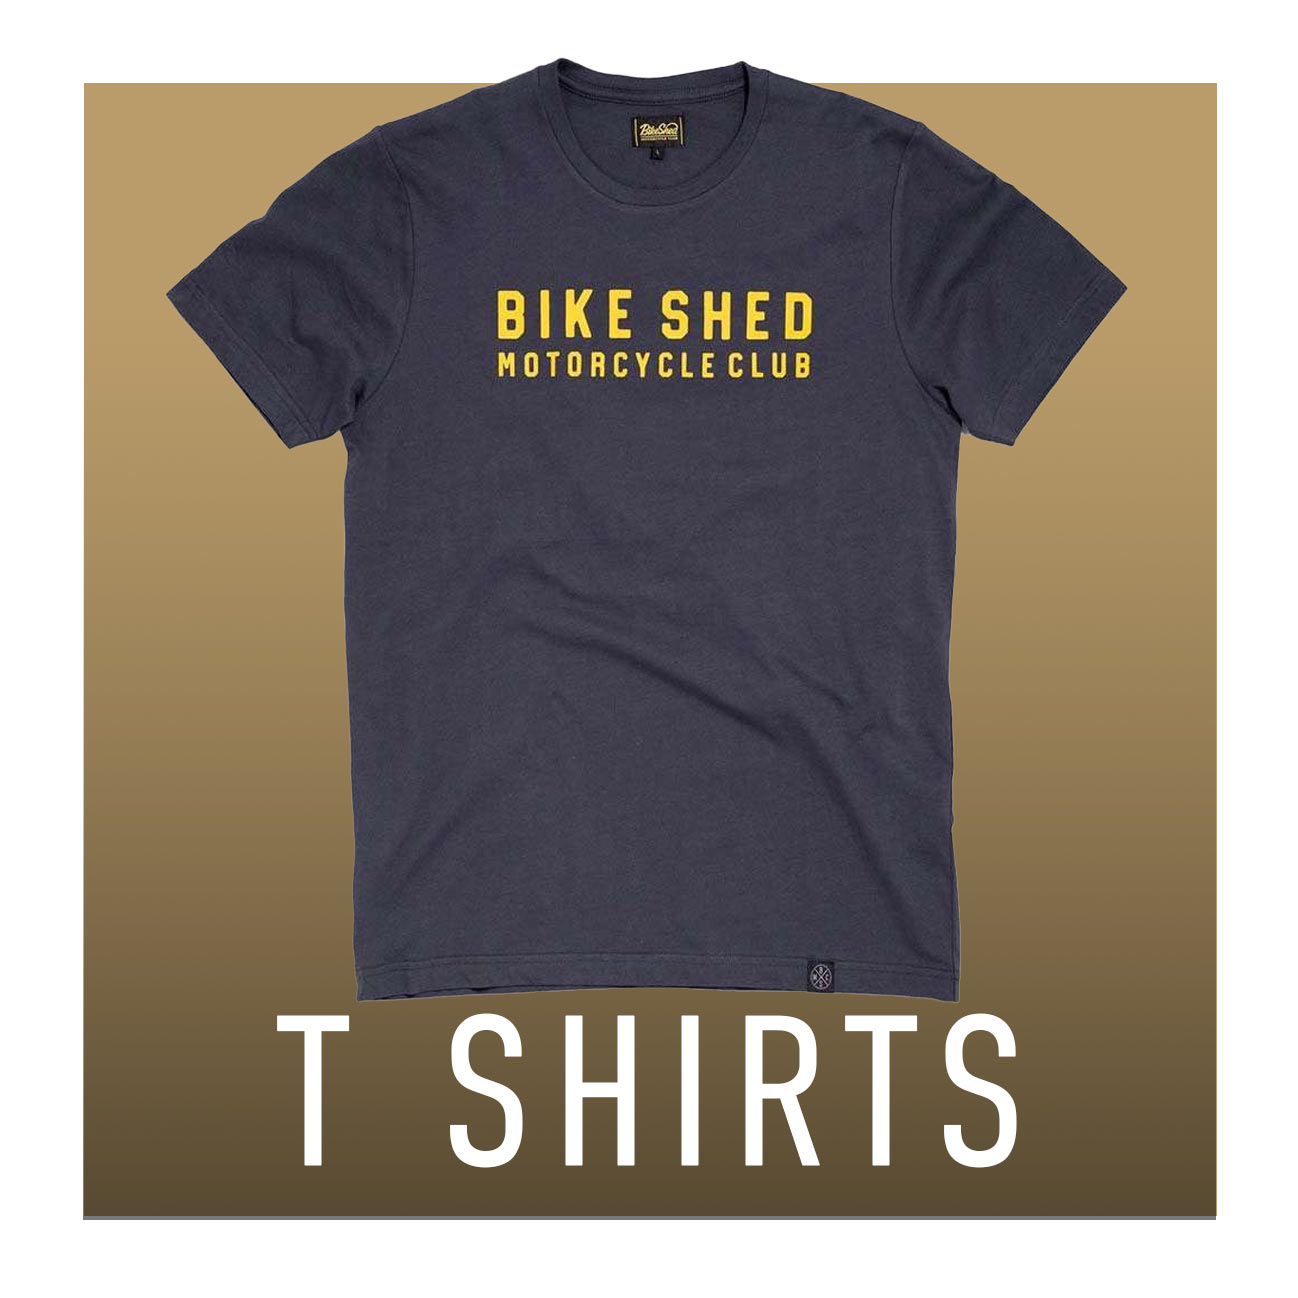 motorcycle lifestyle clothing and t shirts for motorcyclists